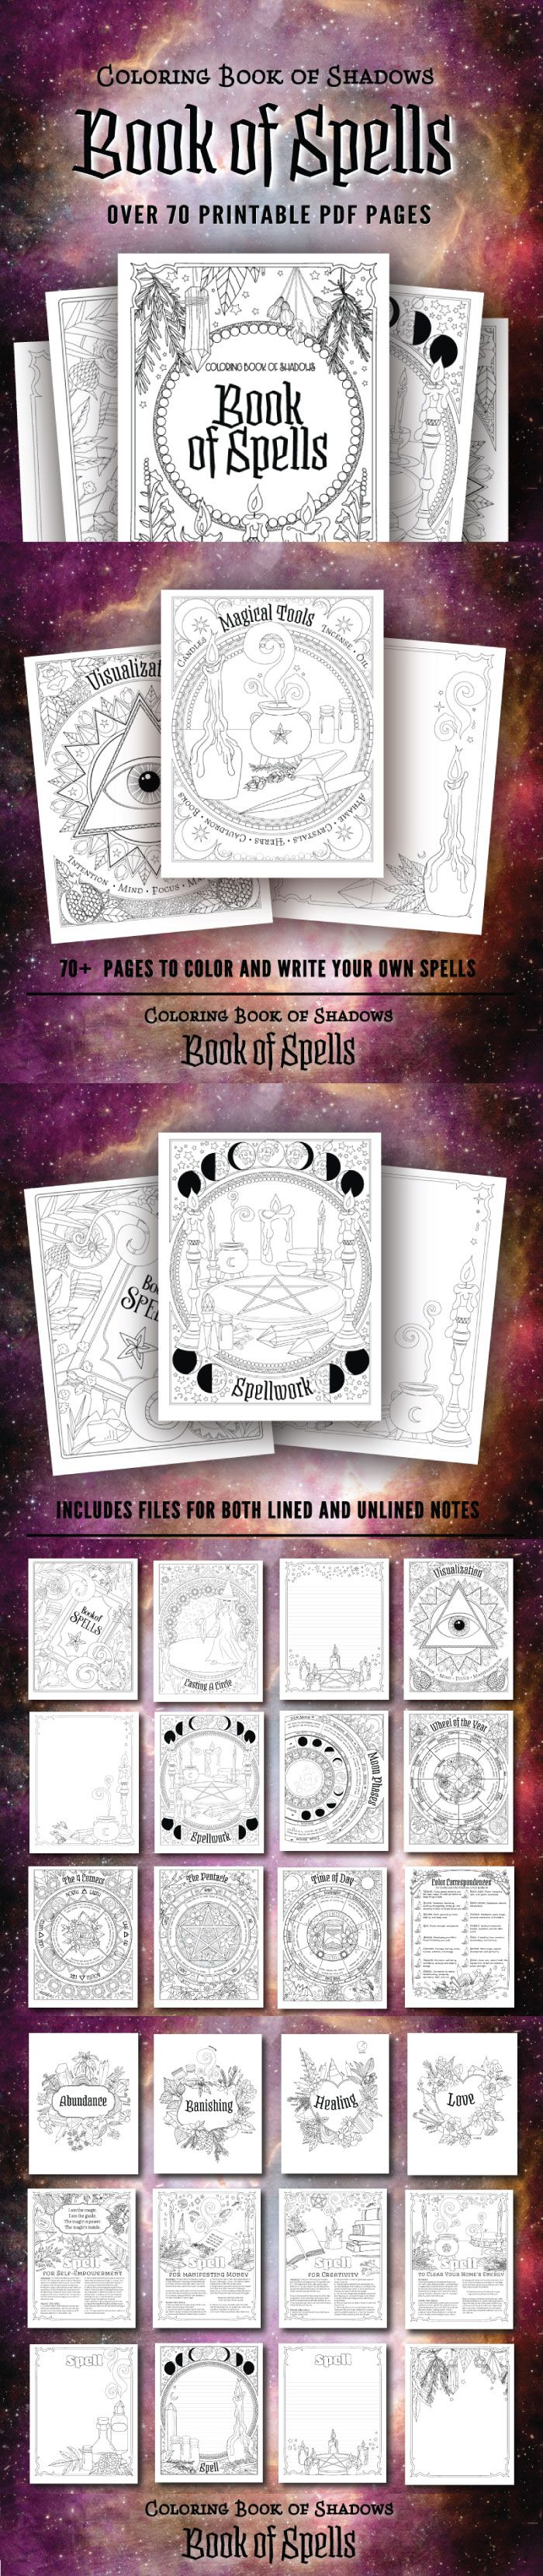 Coloring Book Of Shadows Book Of Spells Printable Pdf